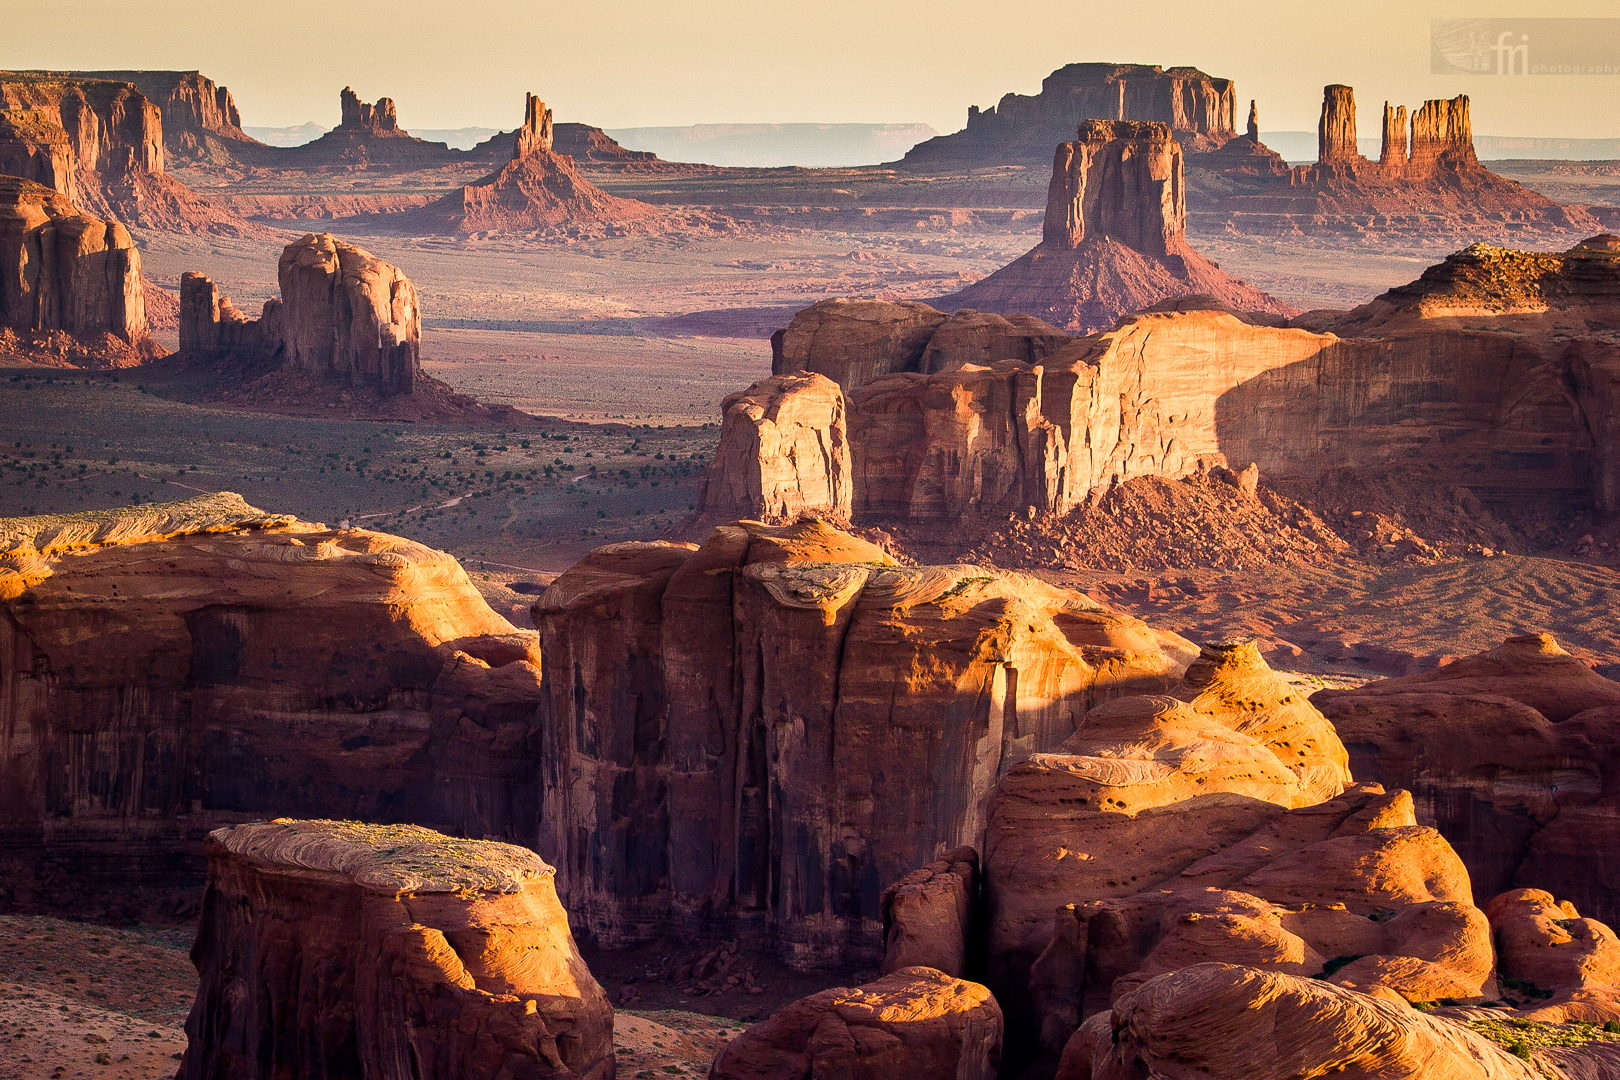 Sunrise over the Monument Valley, view from the Hunt's Mesa by Francesco Riccardo Iacomino